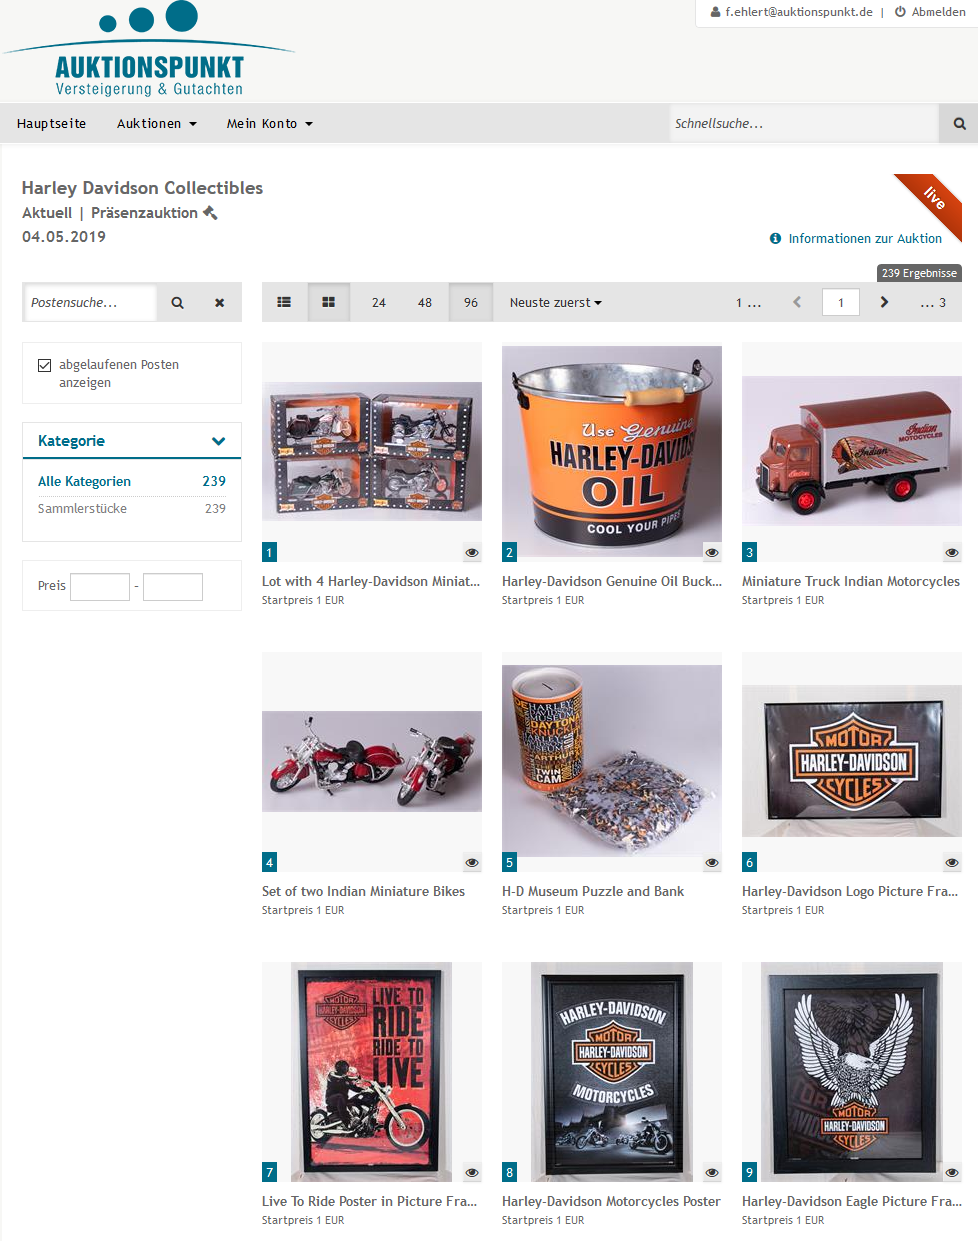 Auction Portal for Harley-Advidson Auction